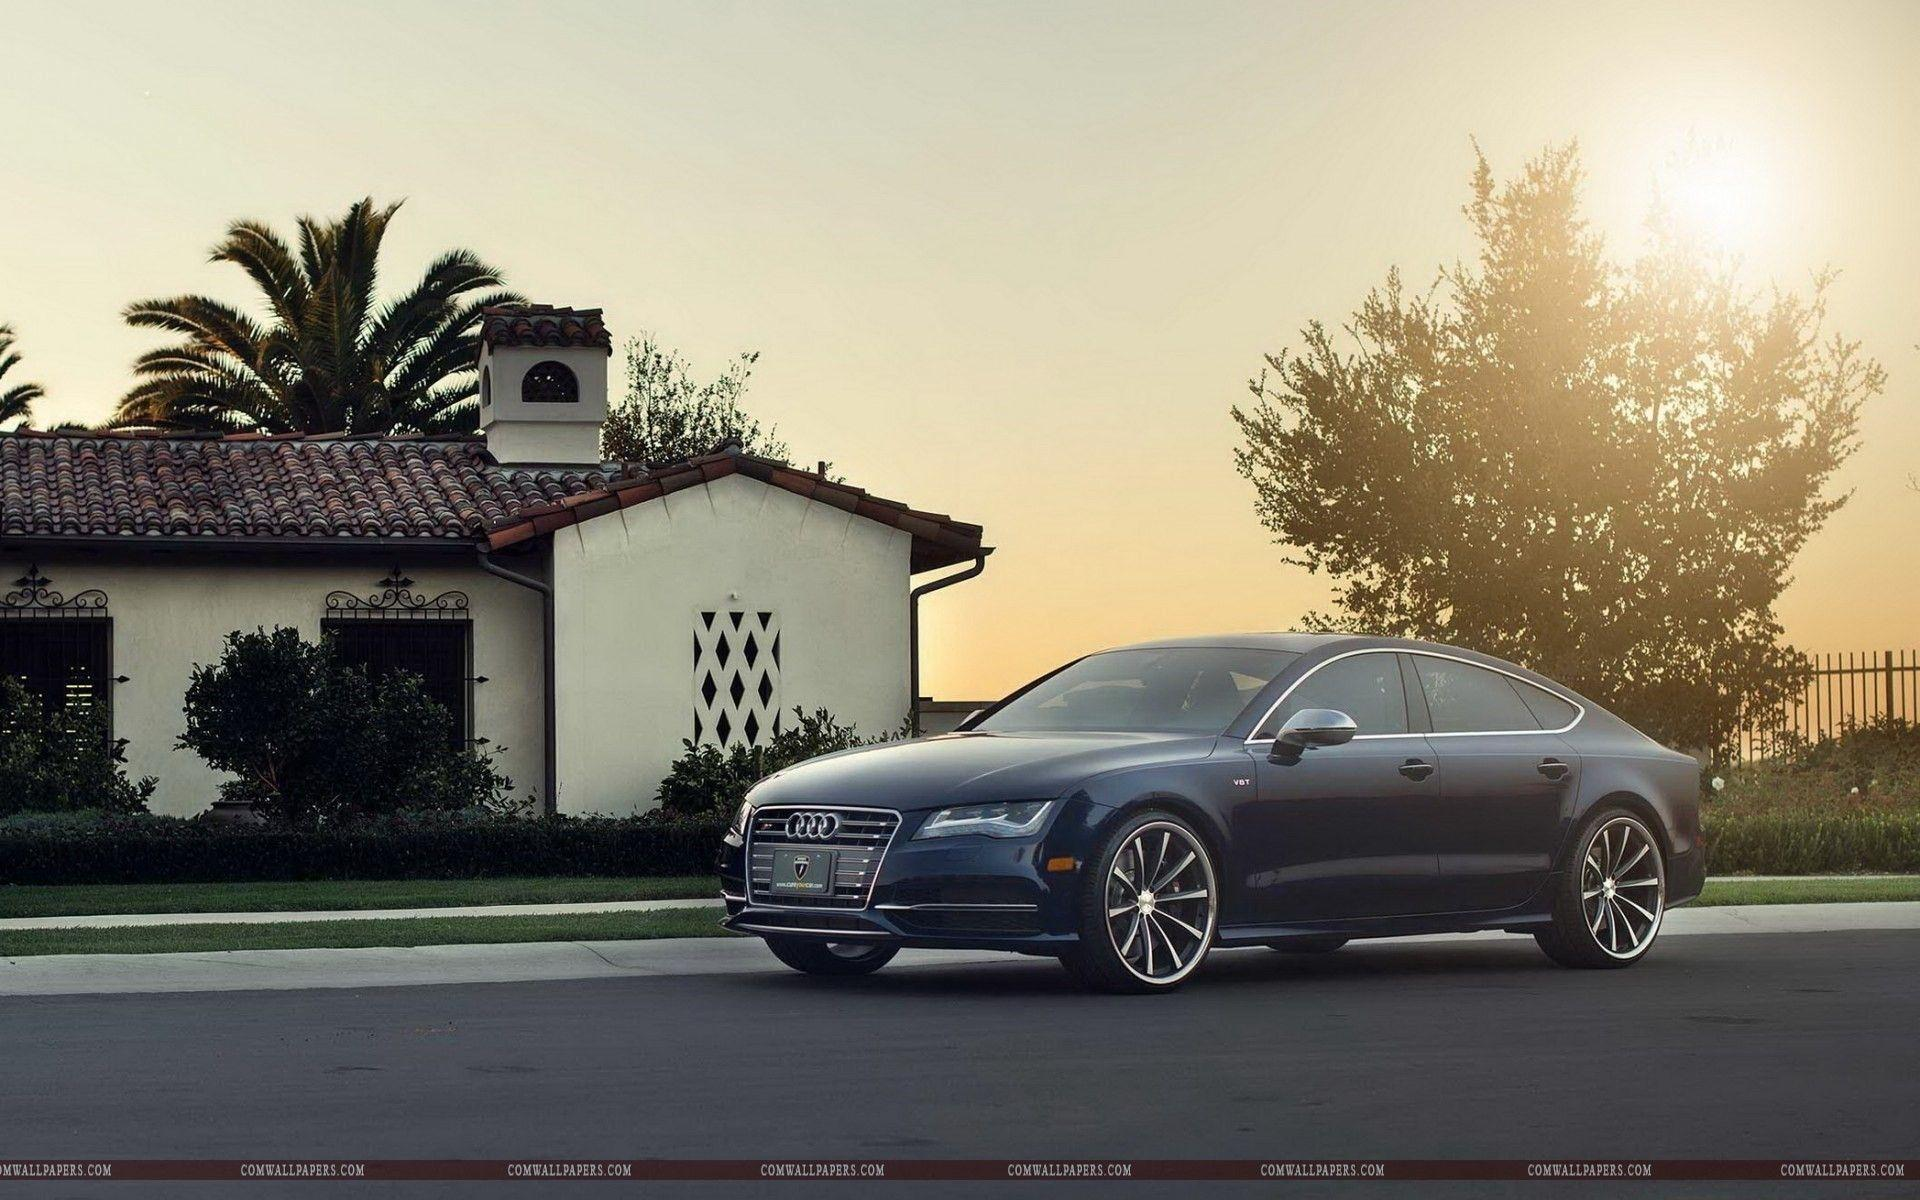 Audi a7 House hd Wallpapers